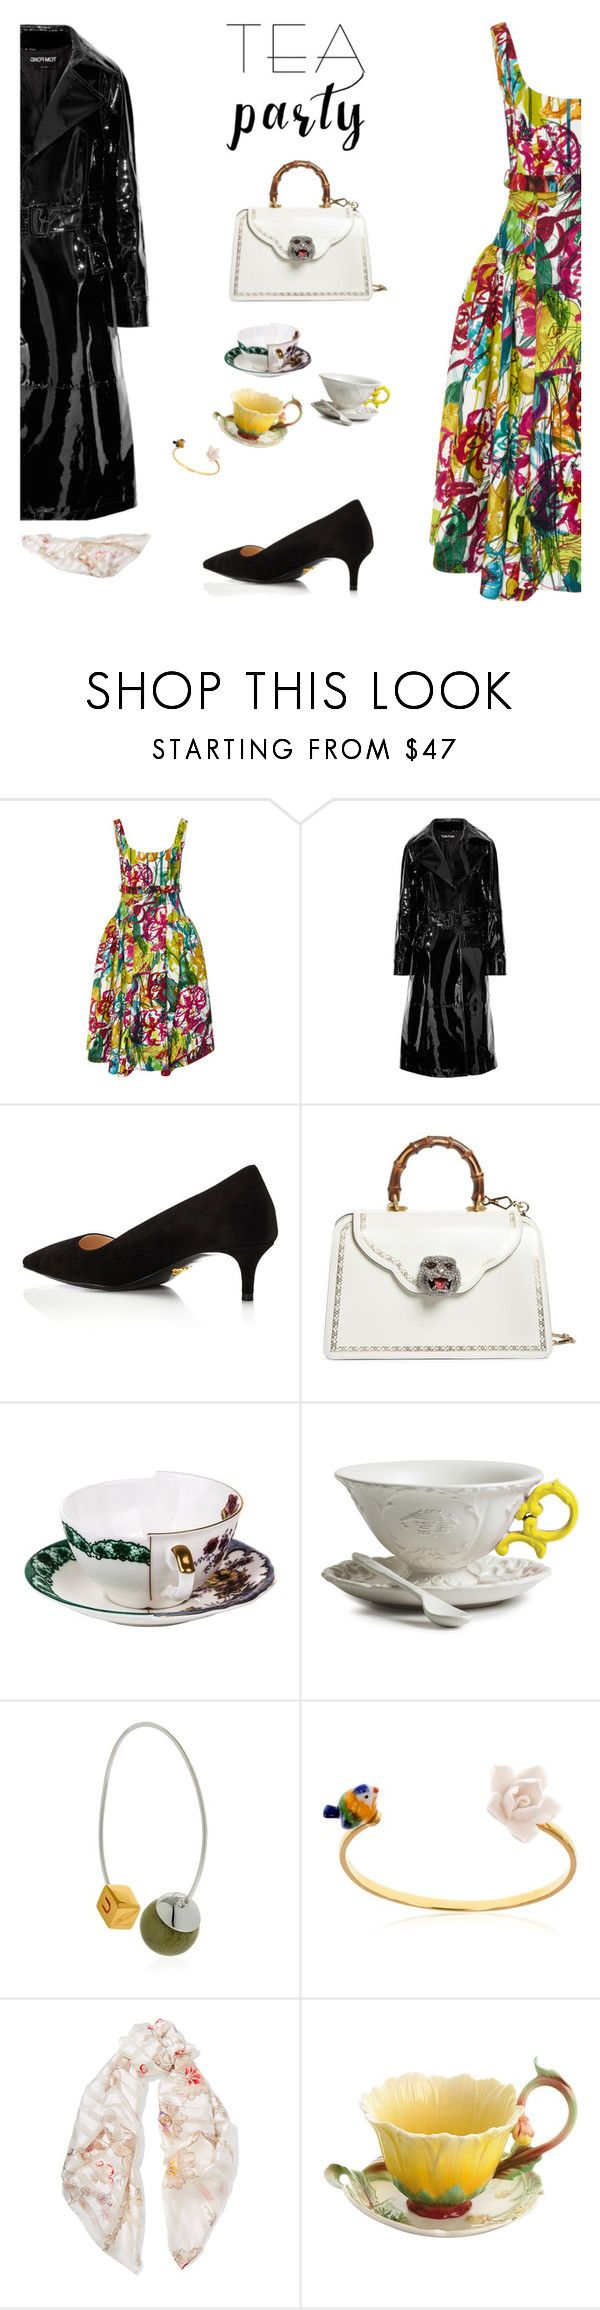 """Afternoon Tea"" by sue-mes ❤ liked on Polyvore featuring Jonathan Cohen, Tom Ford, Prada, Gucci, Seletti, URiBE, Nach, Fendi and Franz"